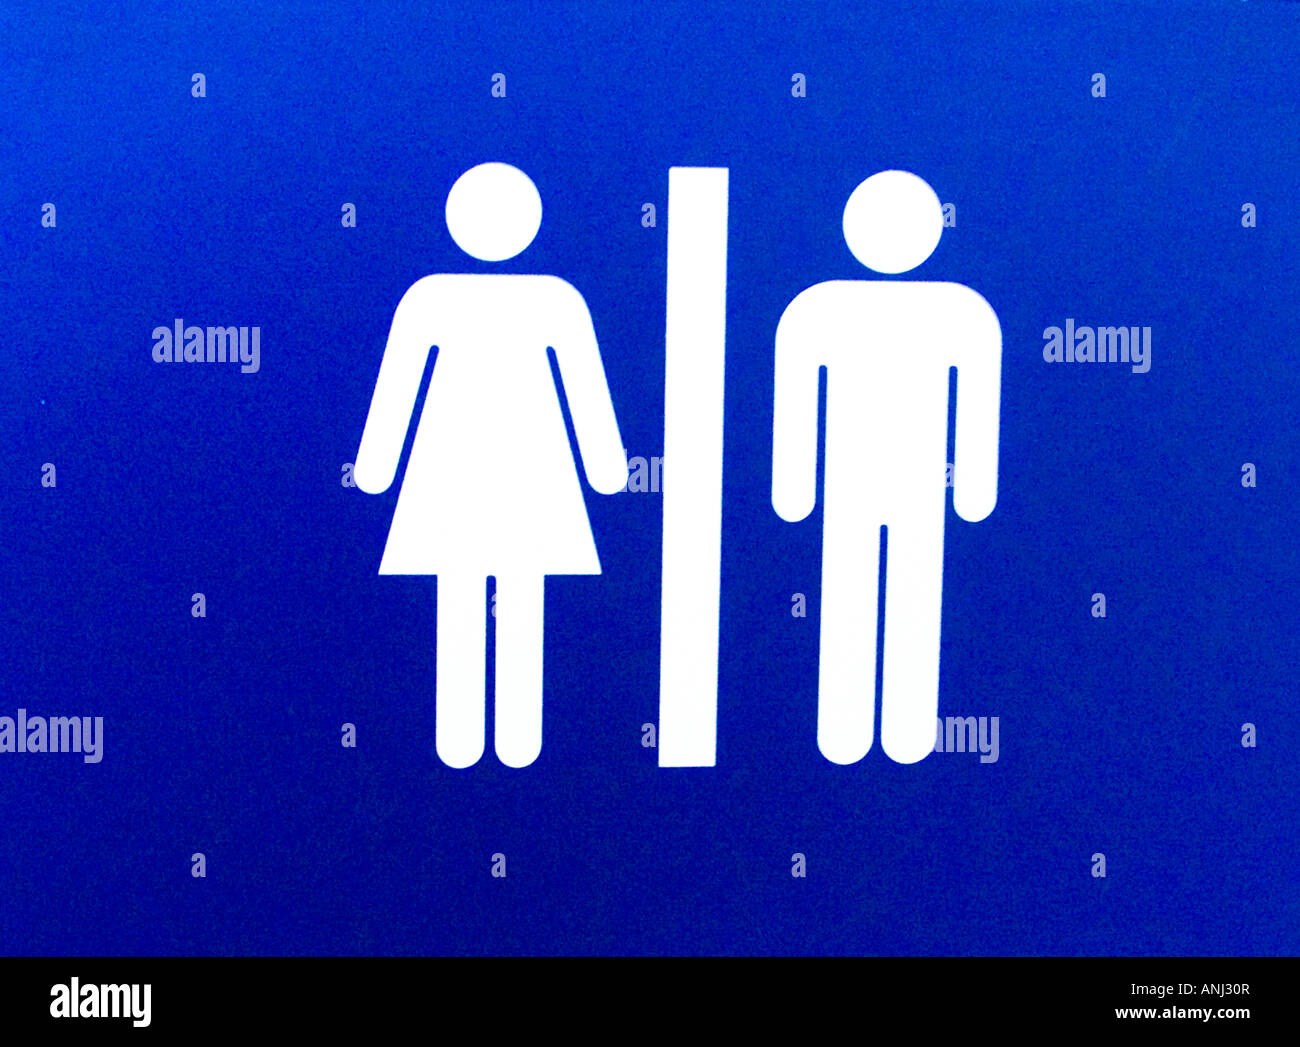 Men women bathroom toilet door sign stock photo 15536758 alamy men women bathroom toilet door sign biocorpaavc Choice Image